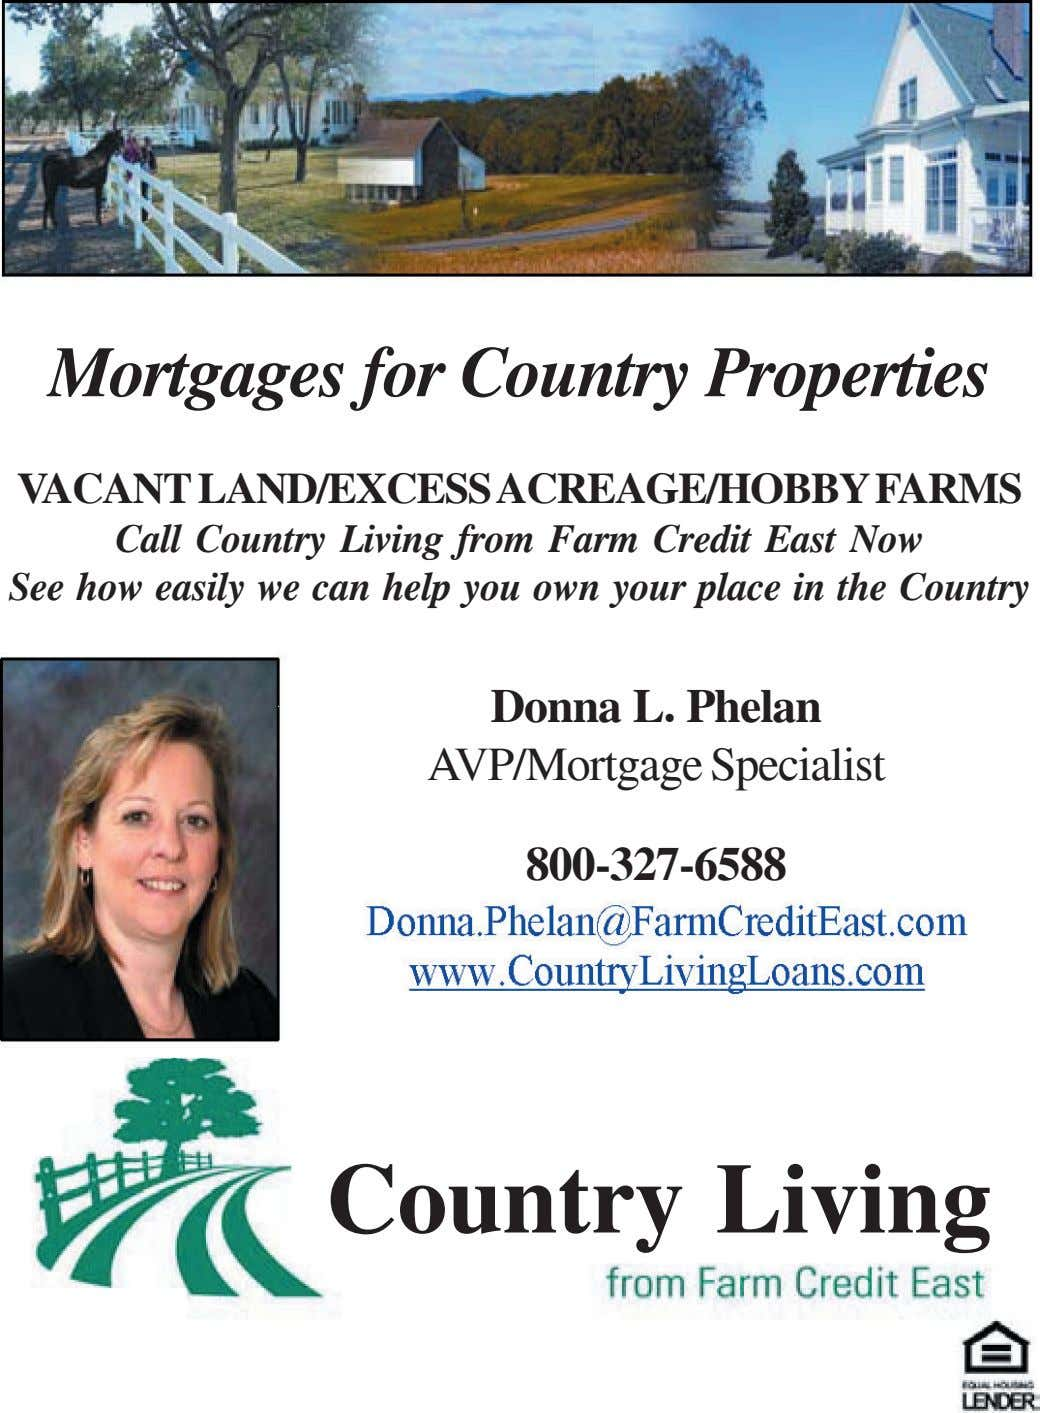 Mortgages for Country Properties VACANT LAND/EXCESSACREAGE/HOBBY FARMS Call Country Living from Farm Credit East Now